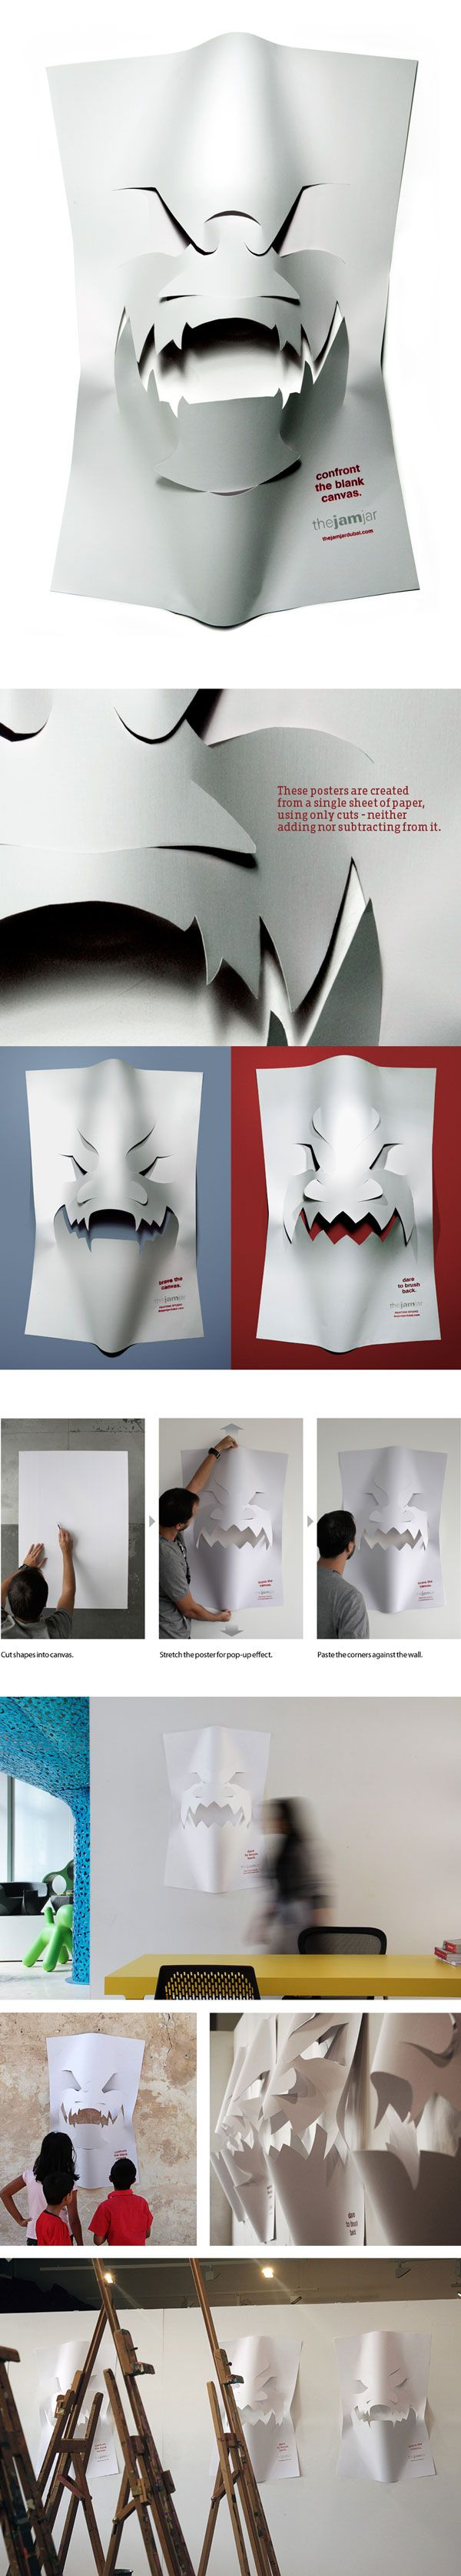 Blank Canvas posters/monsters